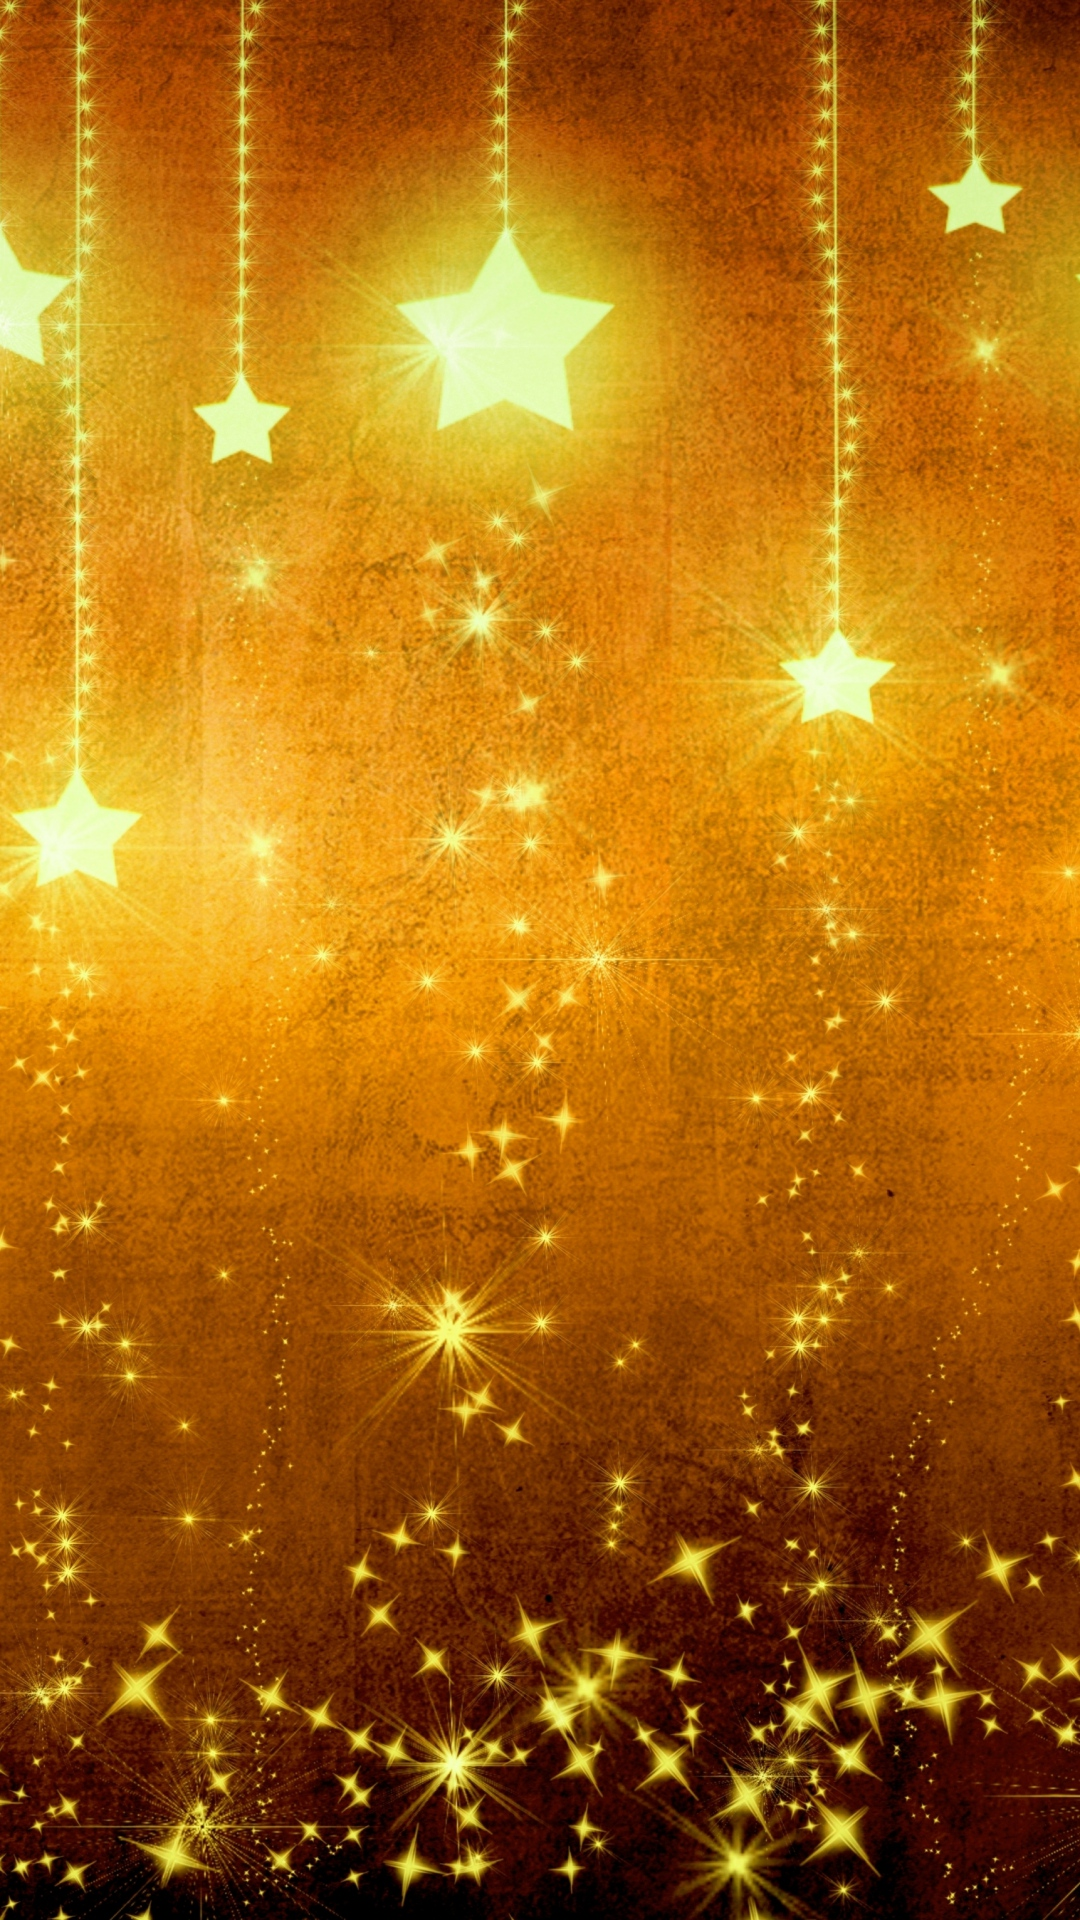 1080x1920 Star Gold Holiday Background Brown Yellow Light Texture ...